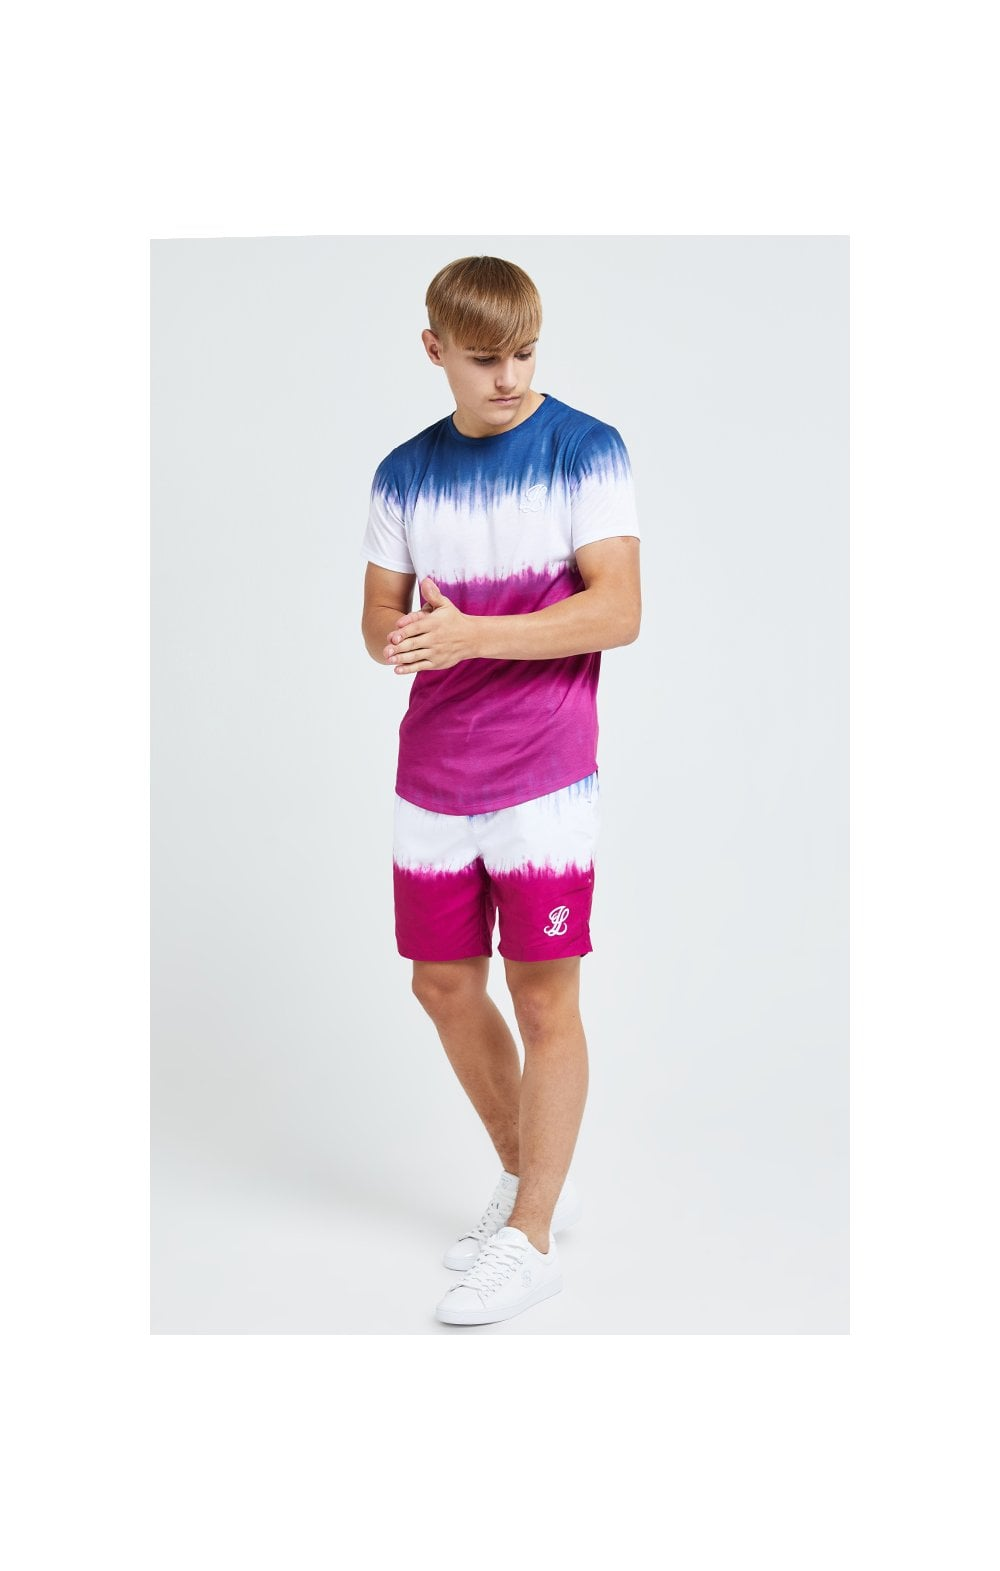 Illusive London Tie Fade Print Tee – Indigo, White & Pink (2)